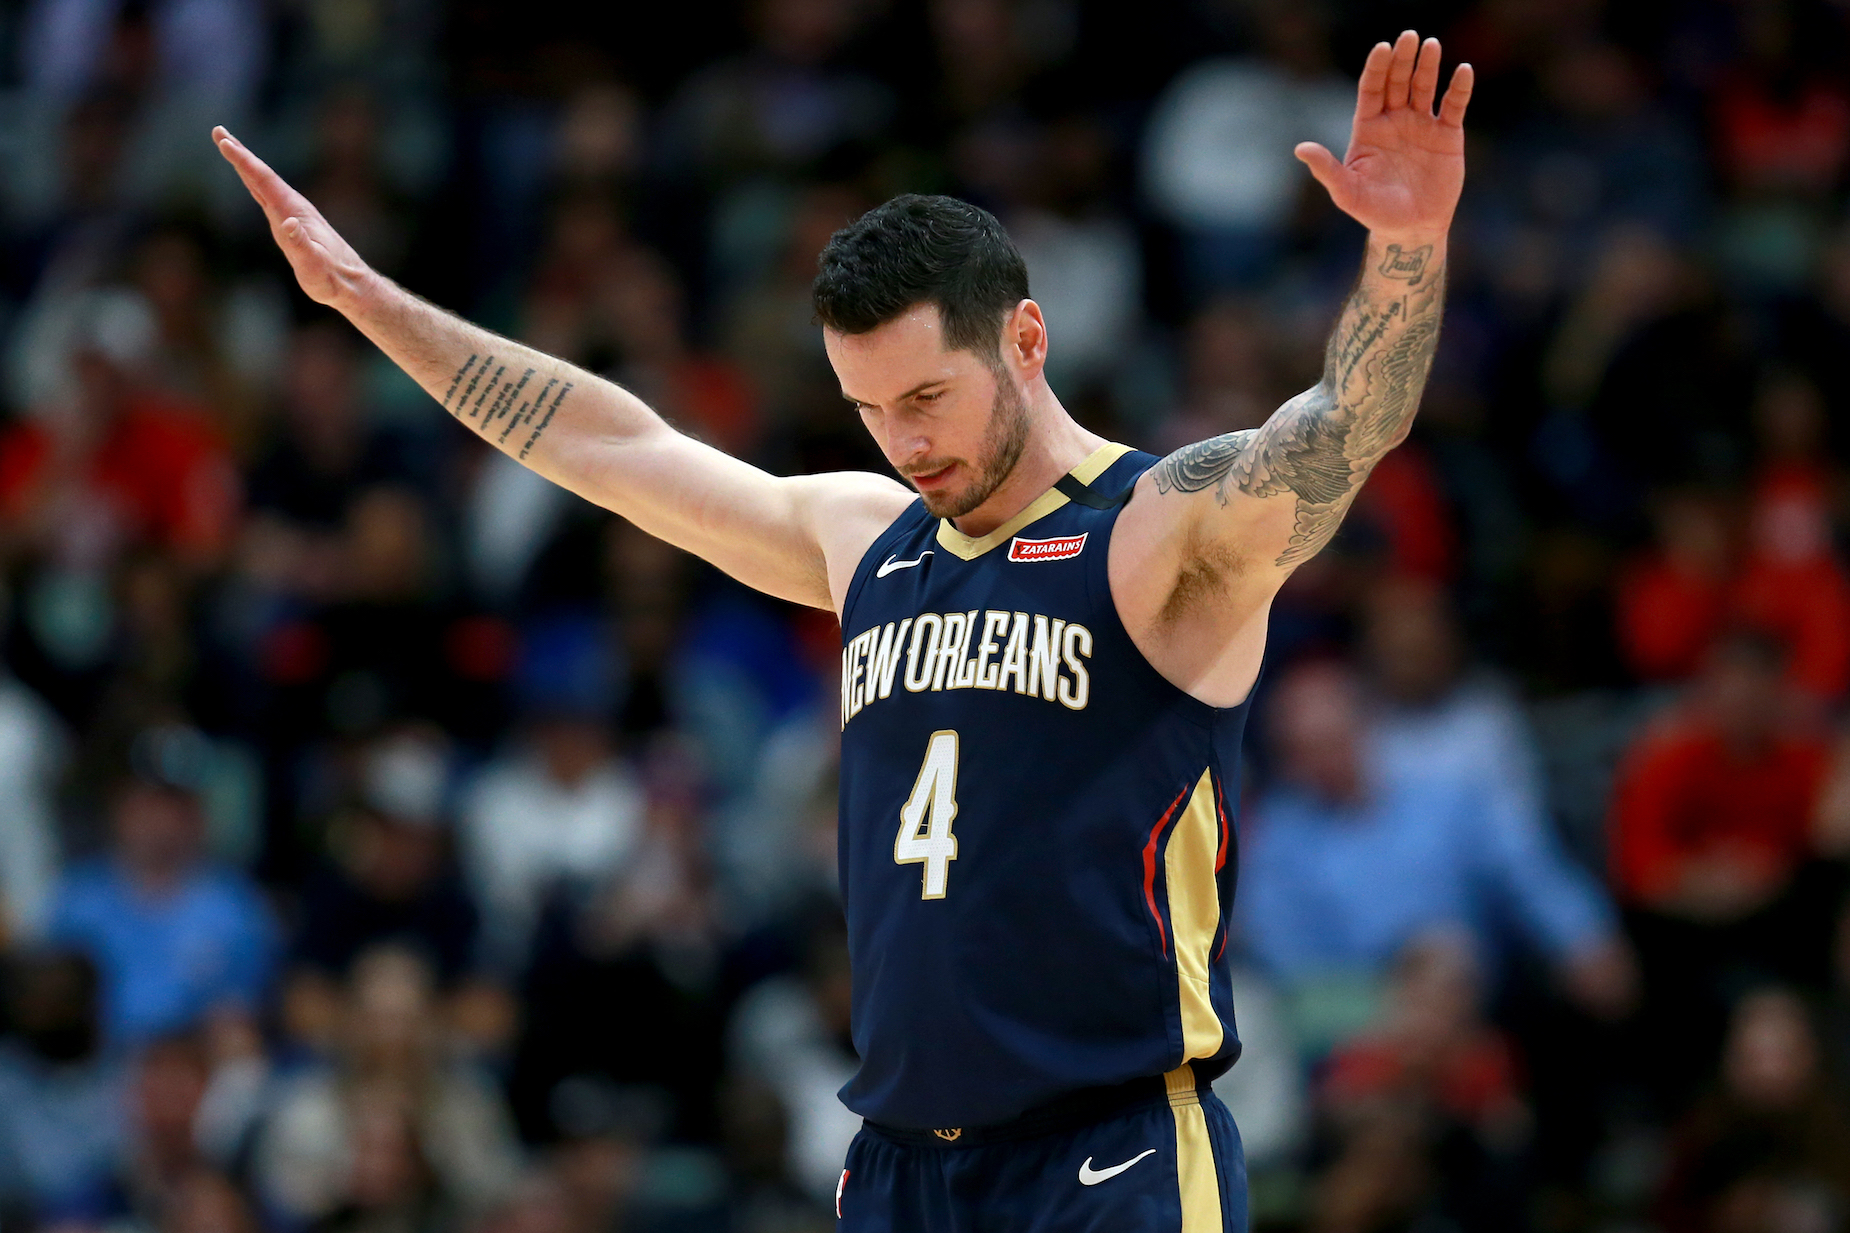 JJ Redick believes that beets have helped him get results in the NBA.